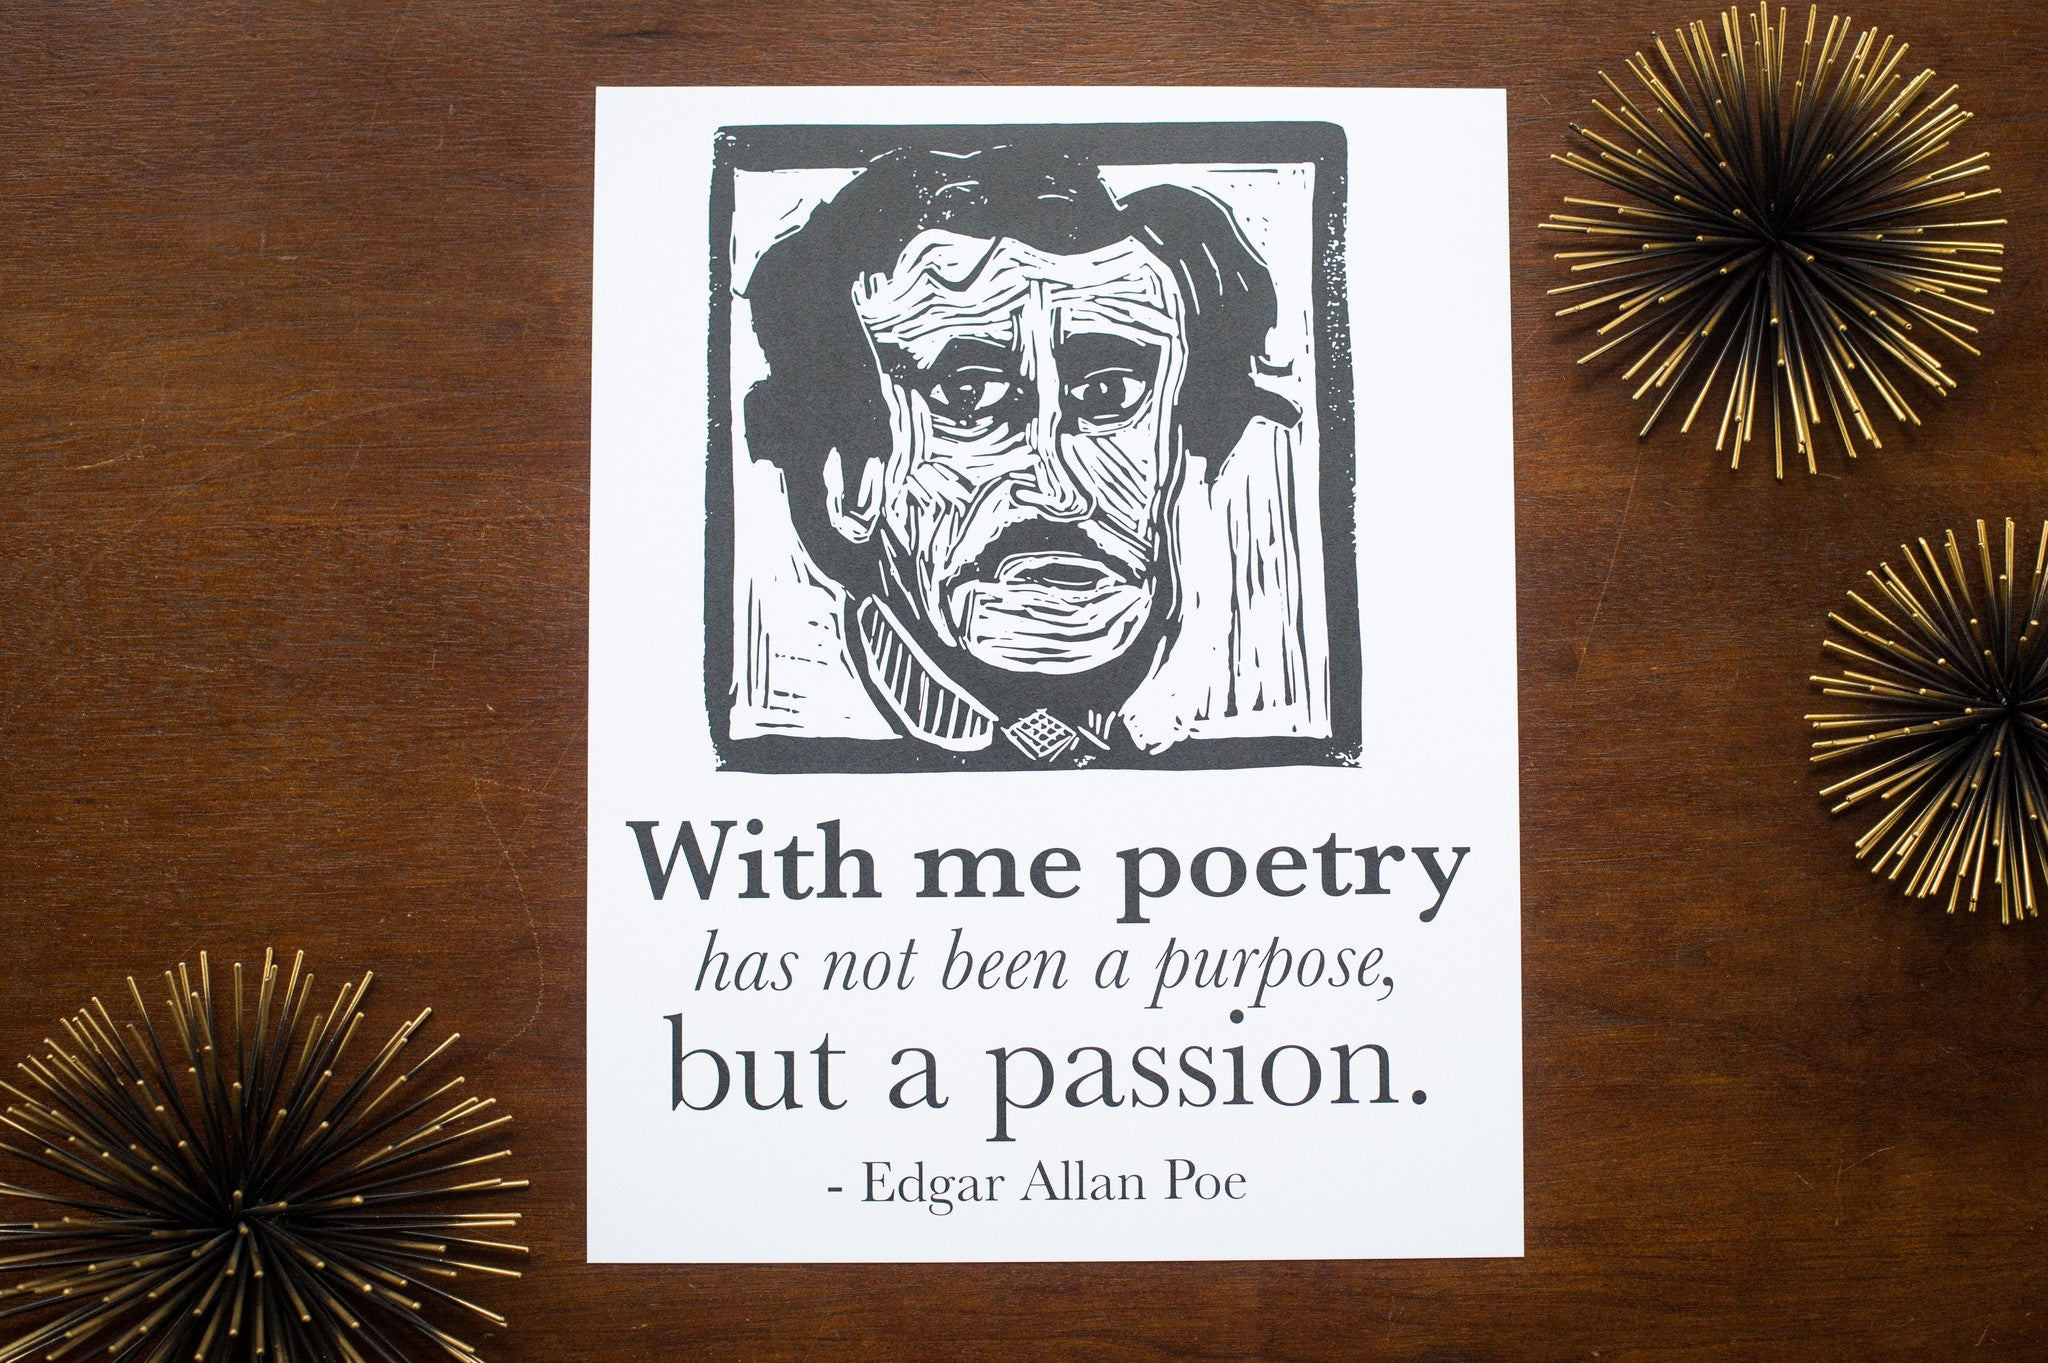 Edgar Allan Poe Art Print poster with poetry quote Literary Gift by Eastgrove Studio